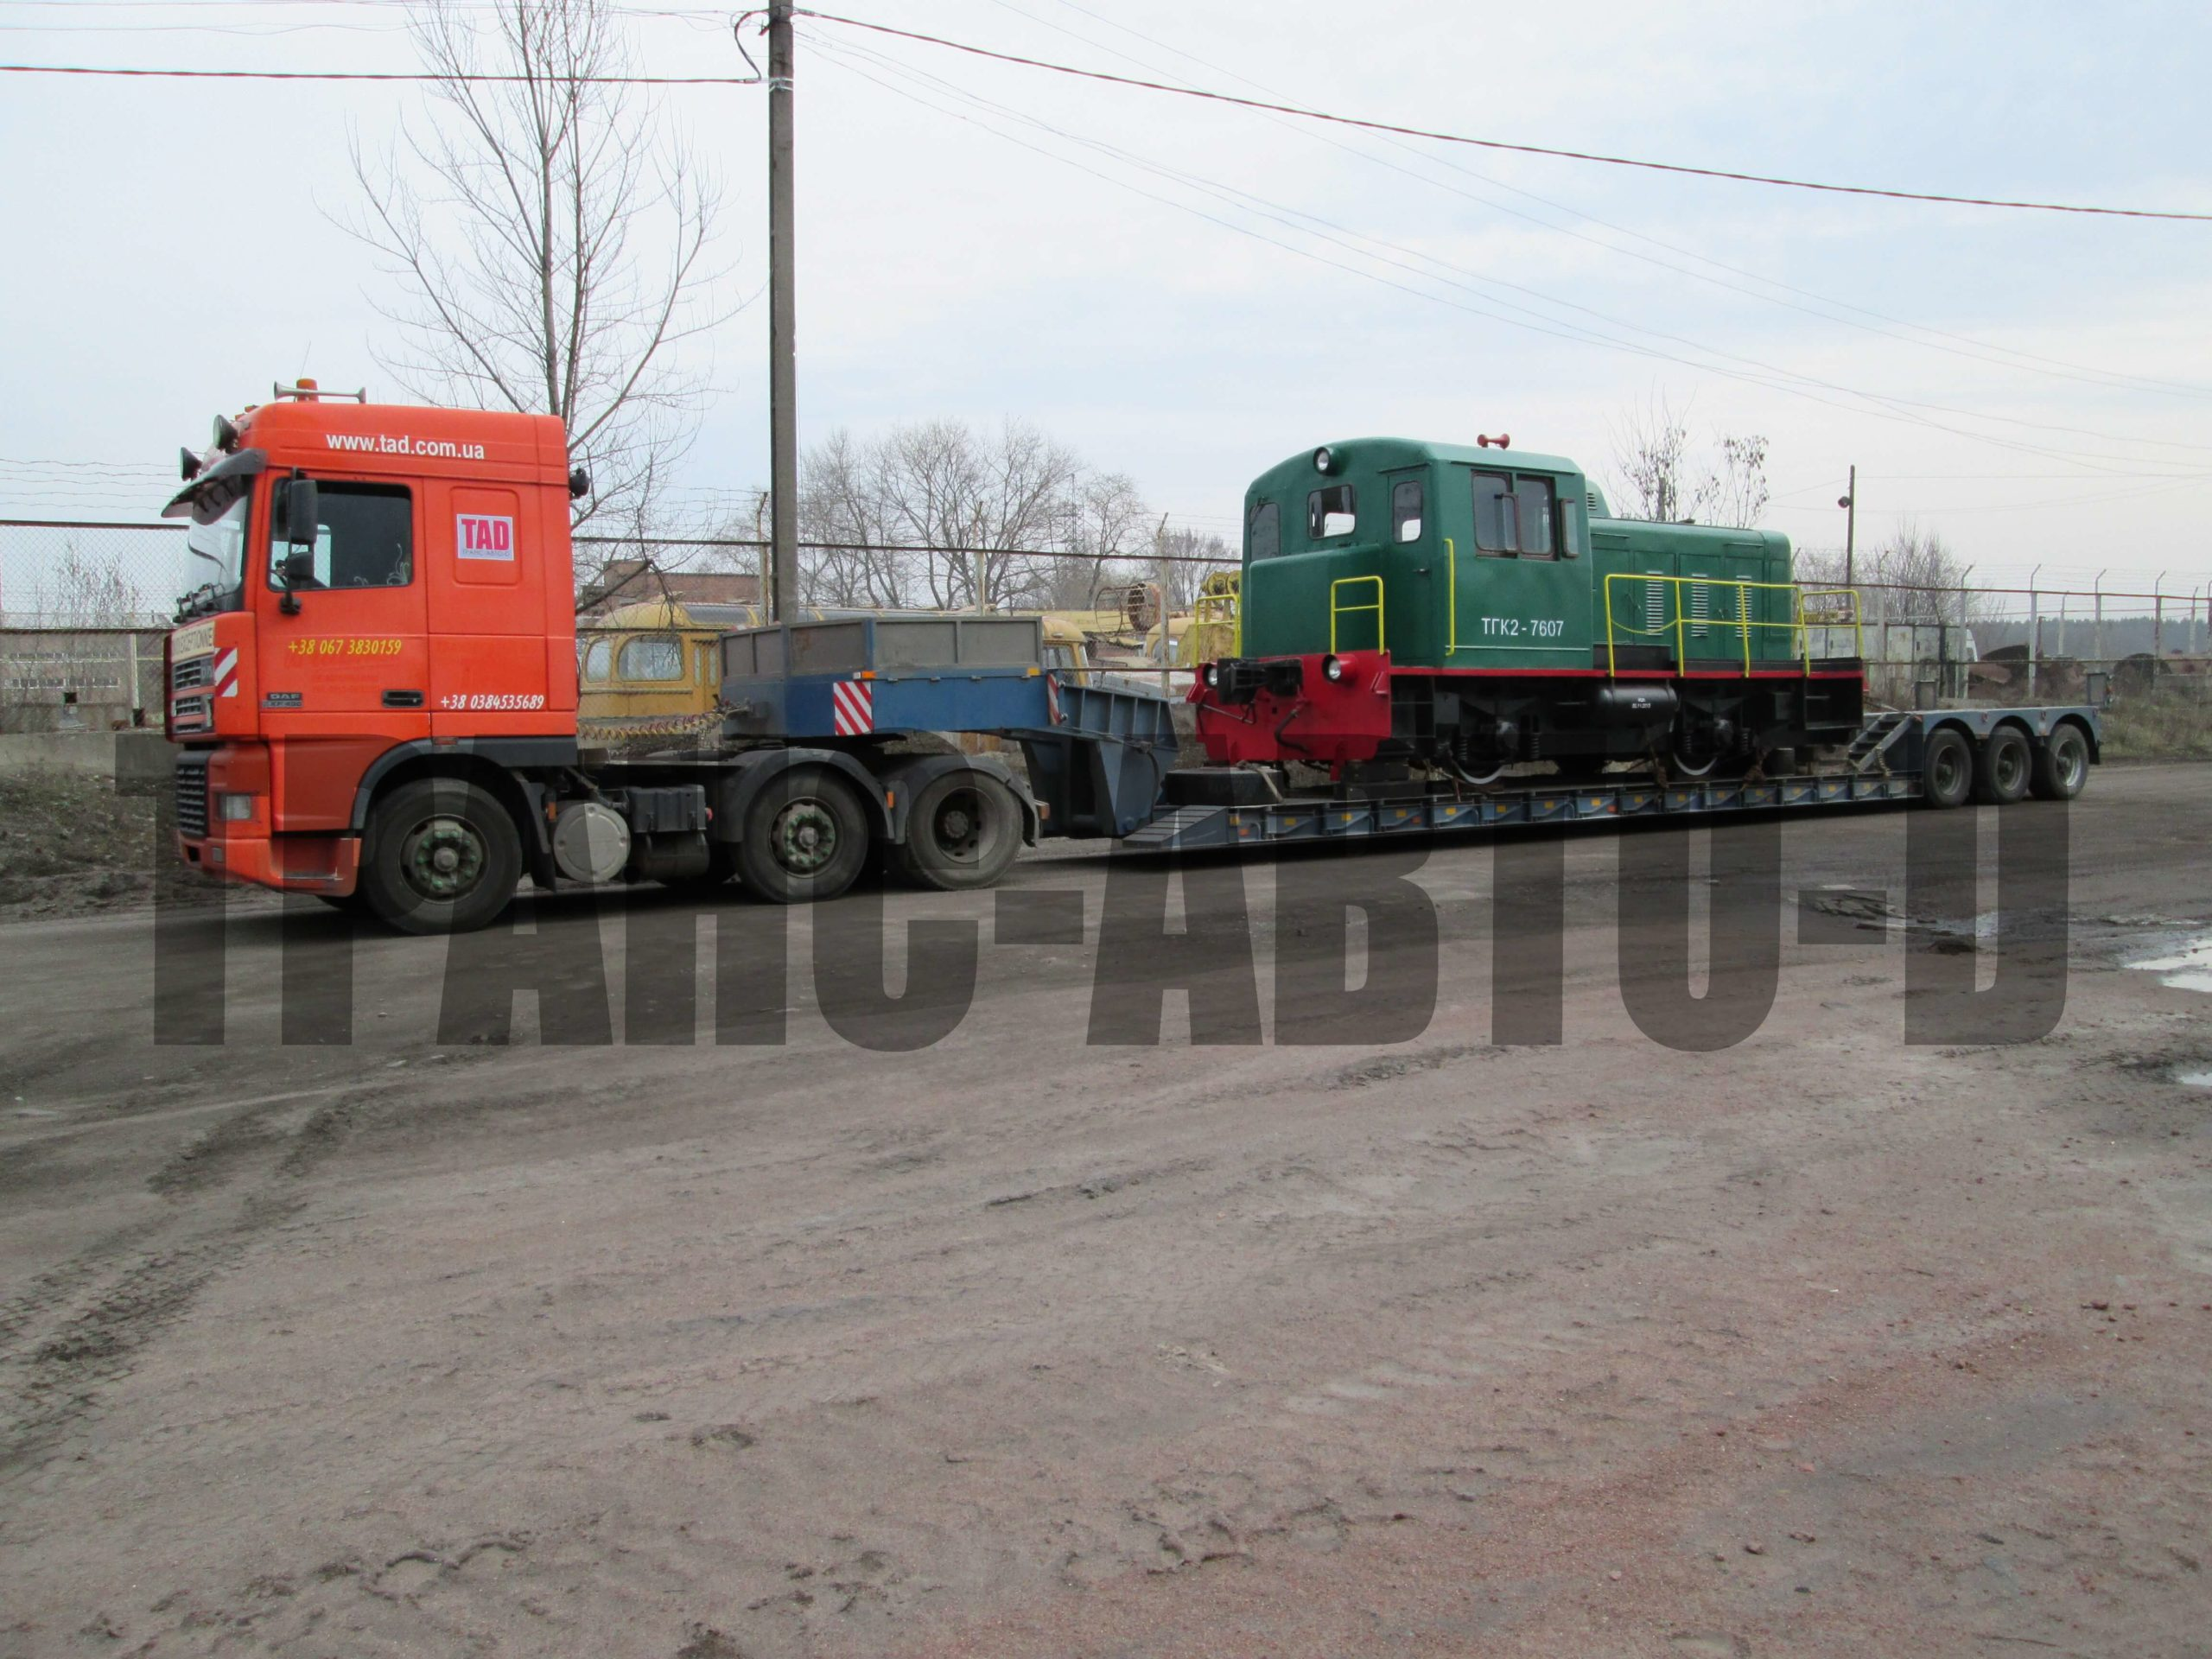 Delivery by trawl of a small train in Ukraine